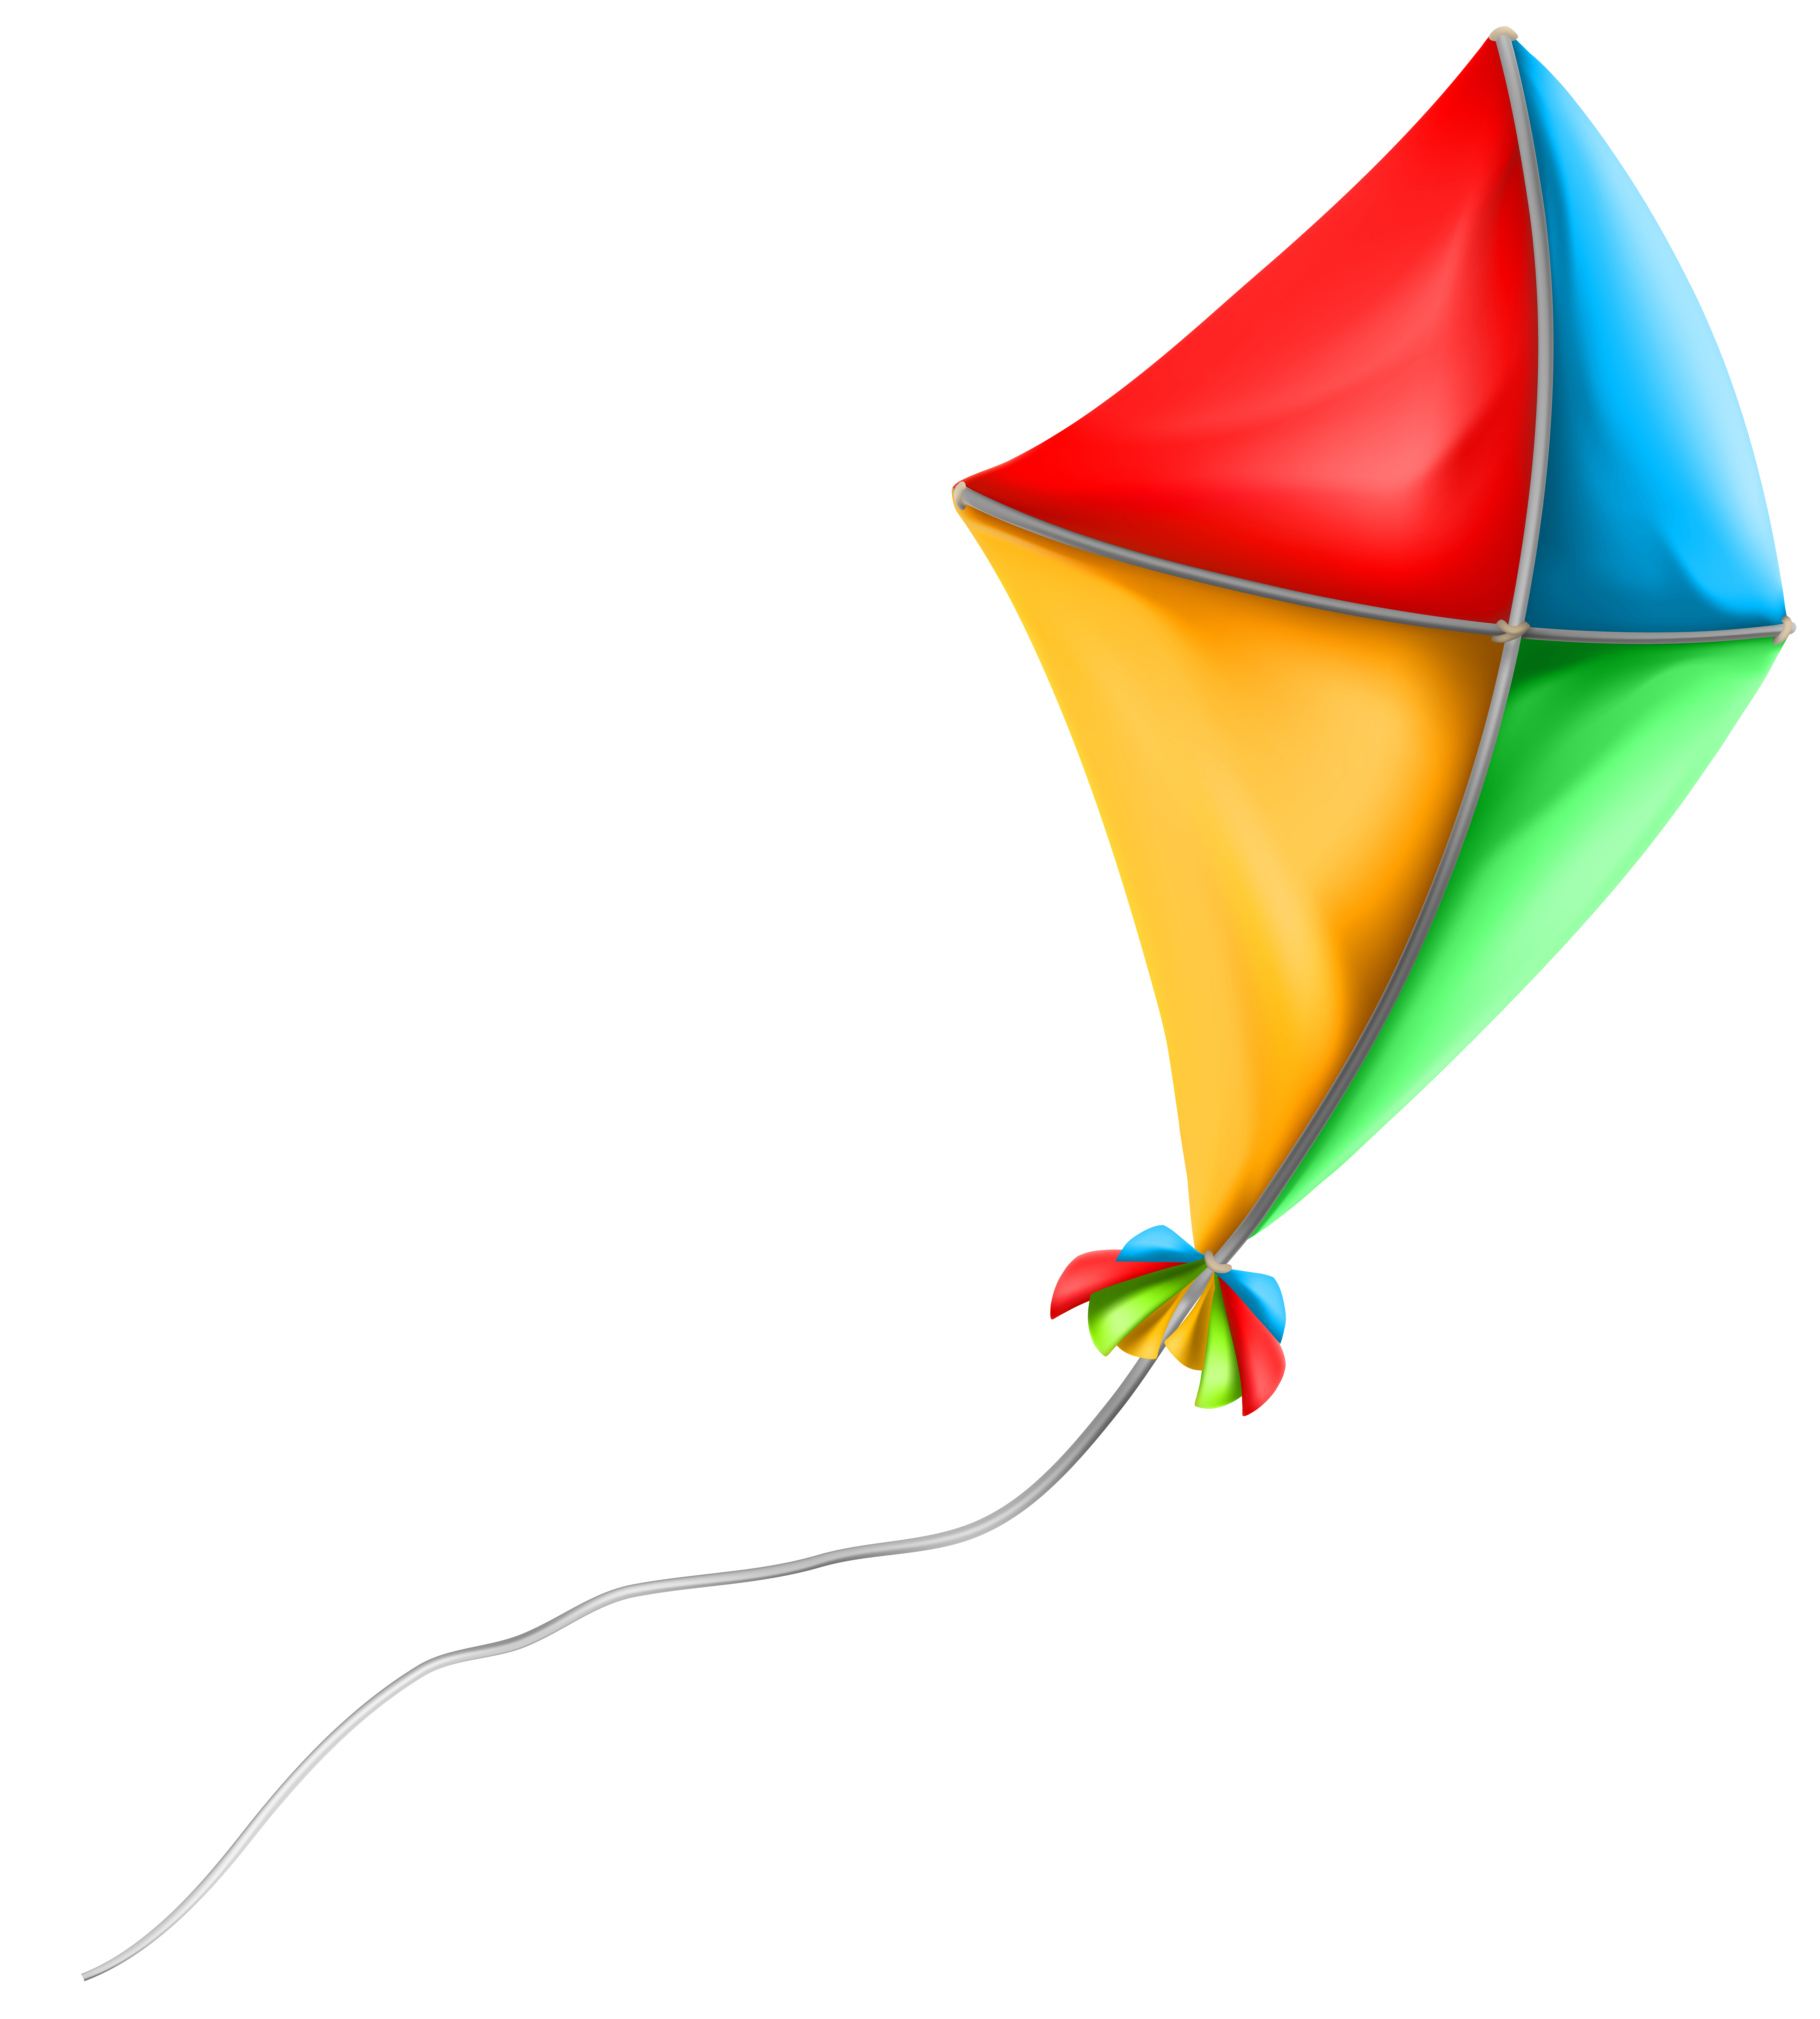 kite clipart download best kite clipart #34930